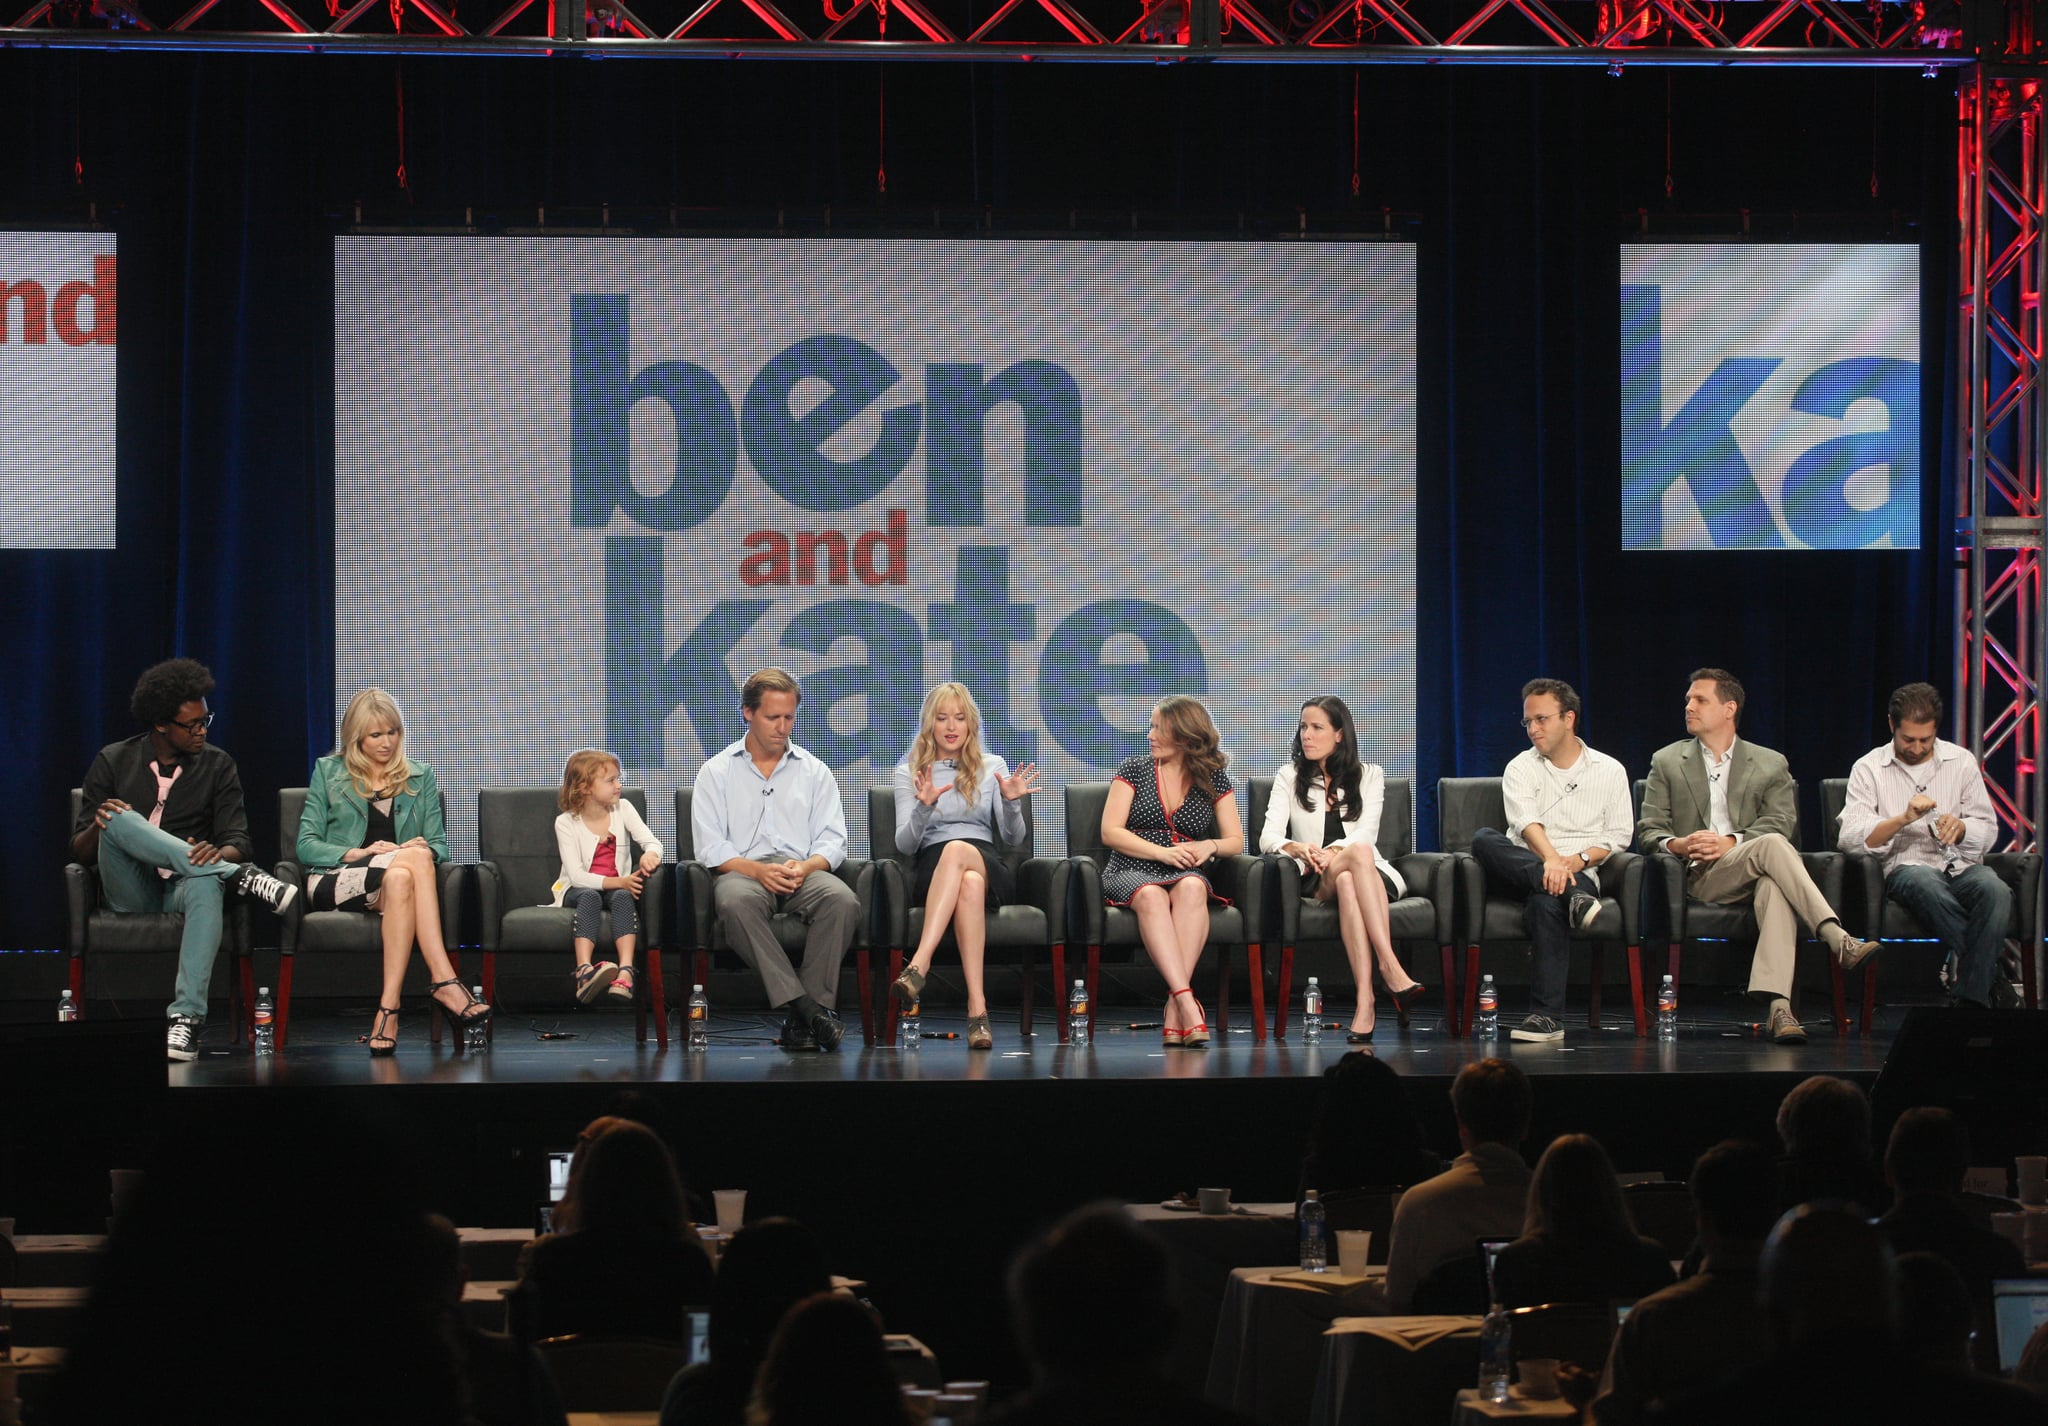 Echo Kellum, Dakota Johnson, Maggie Elizabeth Jones, Nat Faxon, and Lucy Punch, creator/executive producer Dana Fox, executive producers Katherine Pope, Jake Kasdan, Garrett Donovan, and Neil Goldman all turned up for the Ben and Kate panel during the 2012 TCA Tour.